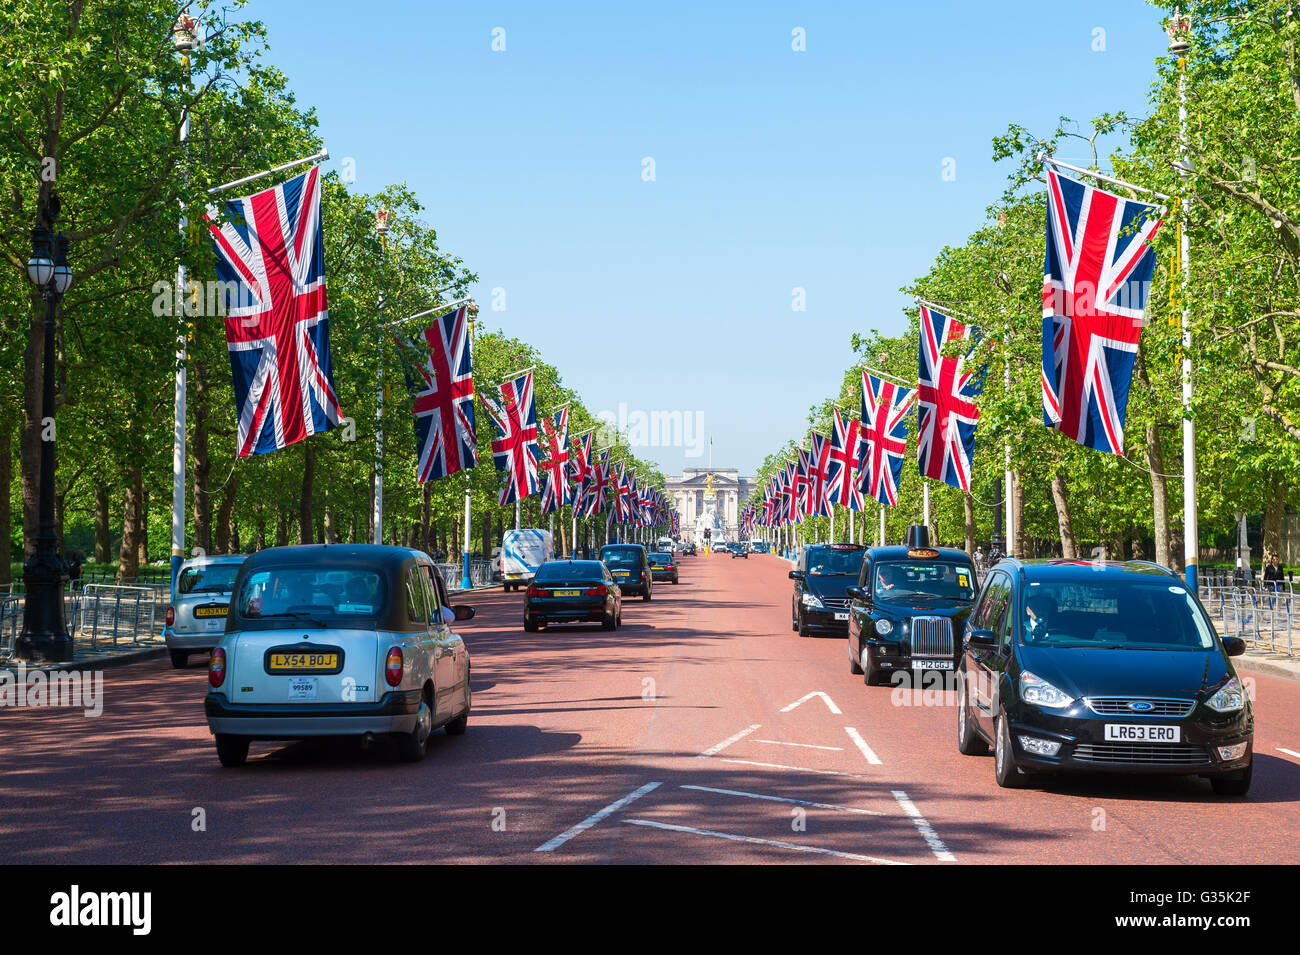 LONDON - JUNE 6, 2016: Traffic passes along the Mall, a thoroughfare connecting Buckingham Palace with Horse Guards - Stock Image